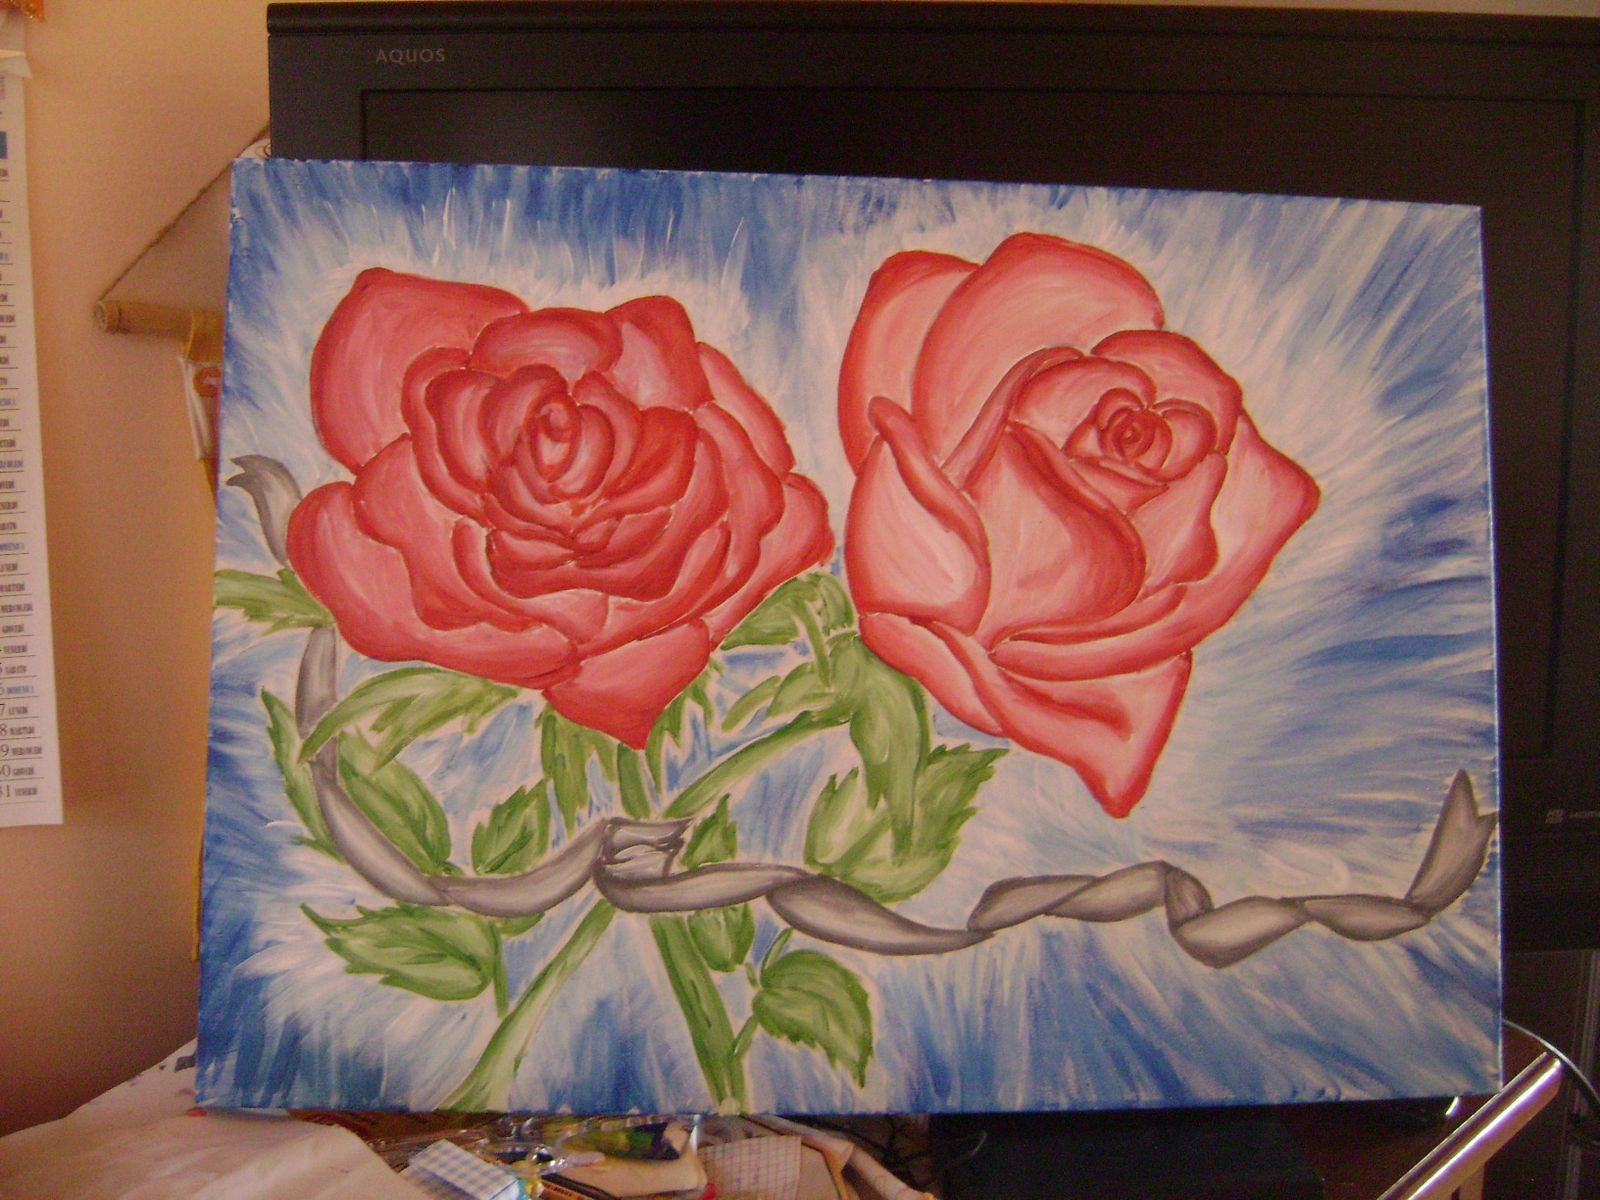 Pin quadro con rose on pinterest for Quadri con rose rosse